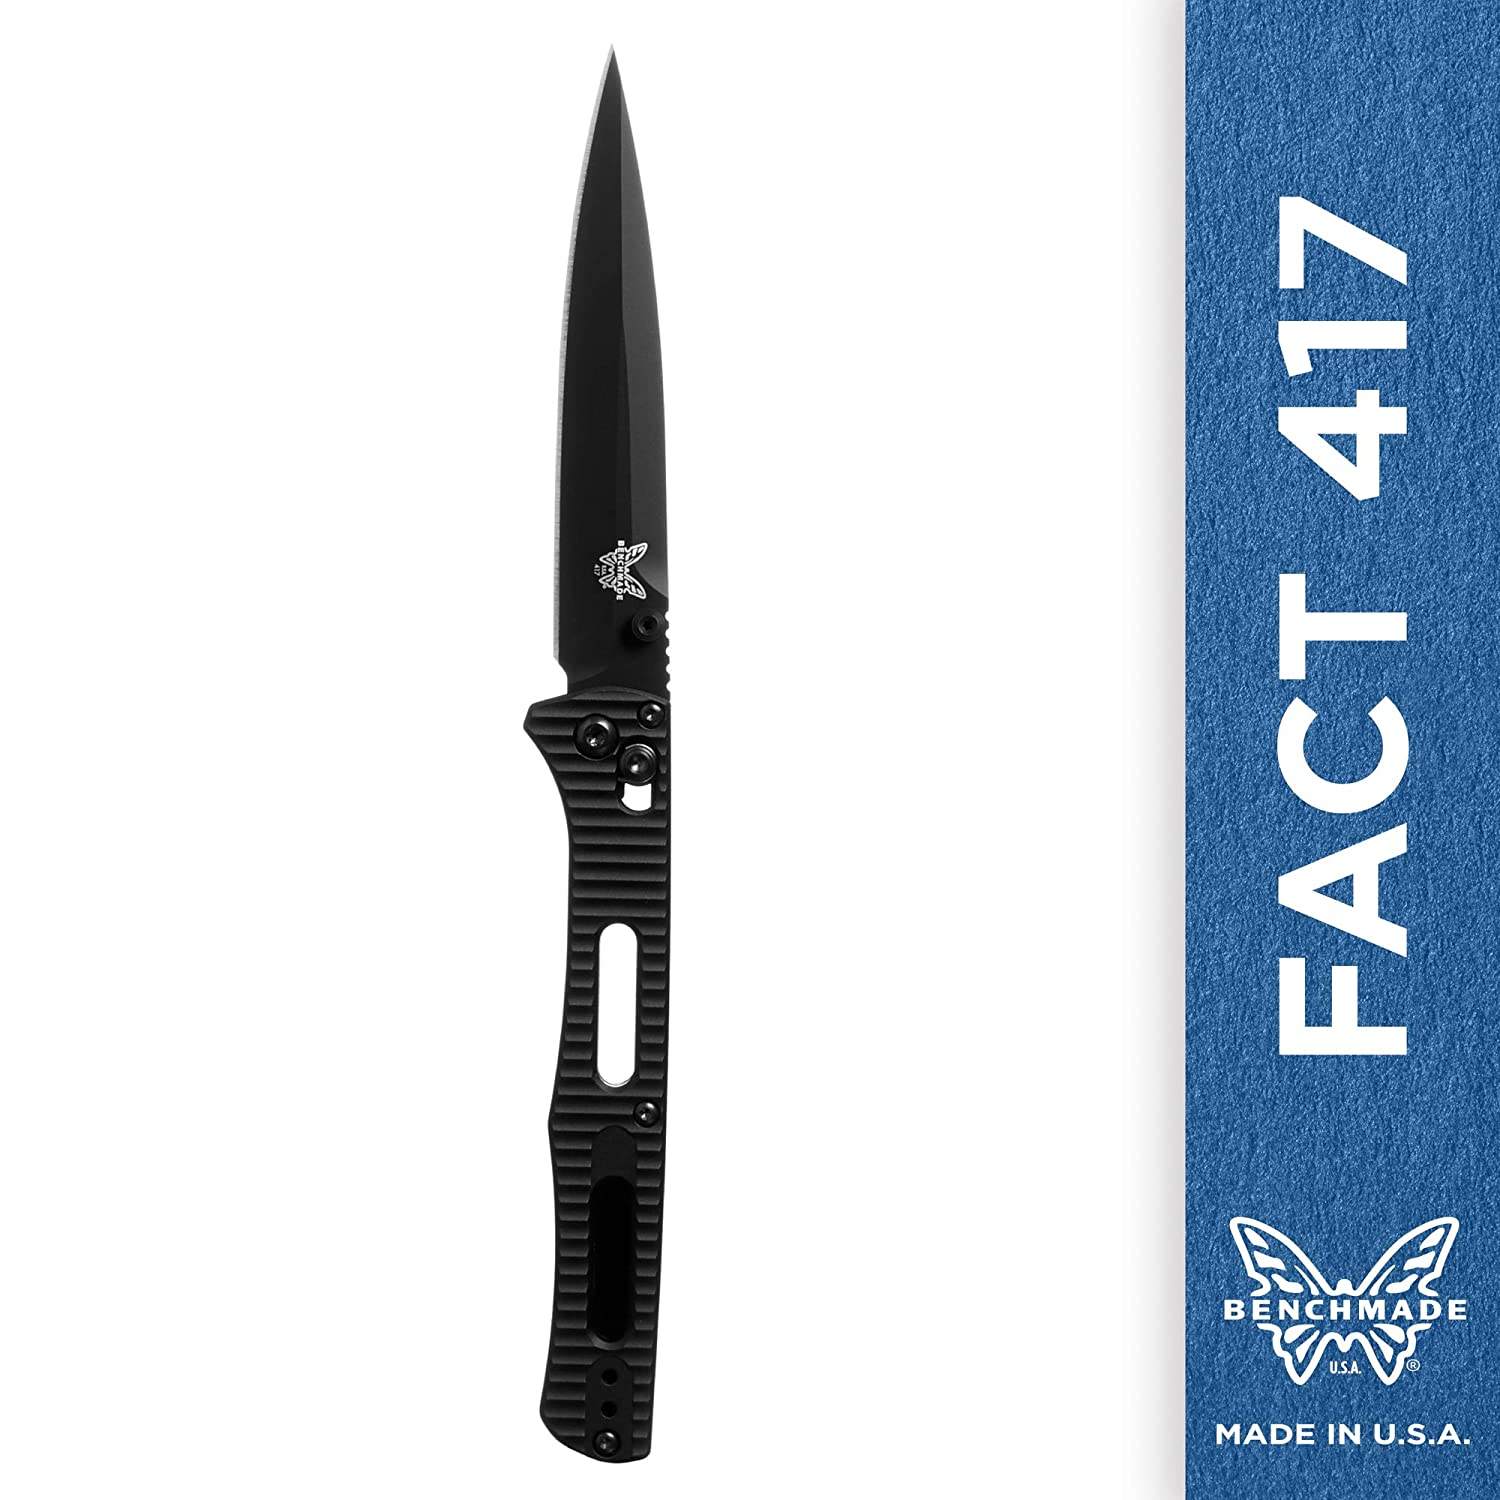 Amazon.com : Benchmade - Fact 417 Minimalist Manual Open Folding Knife Made  in USA, Spear-Point Blade, Plain Edge, Coated Finish, Aluminum Handle :  Sports & ...